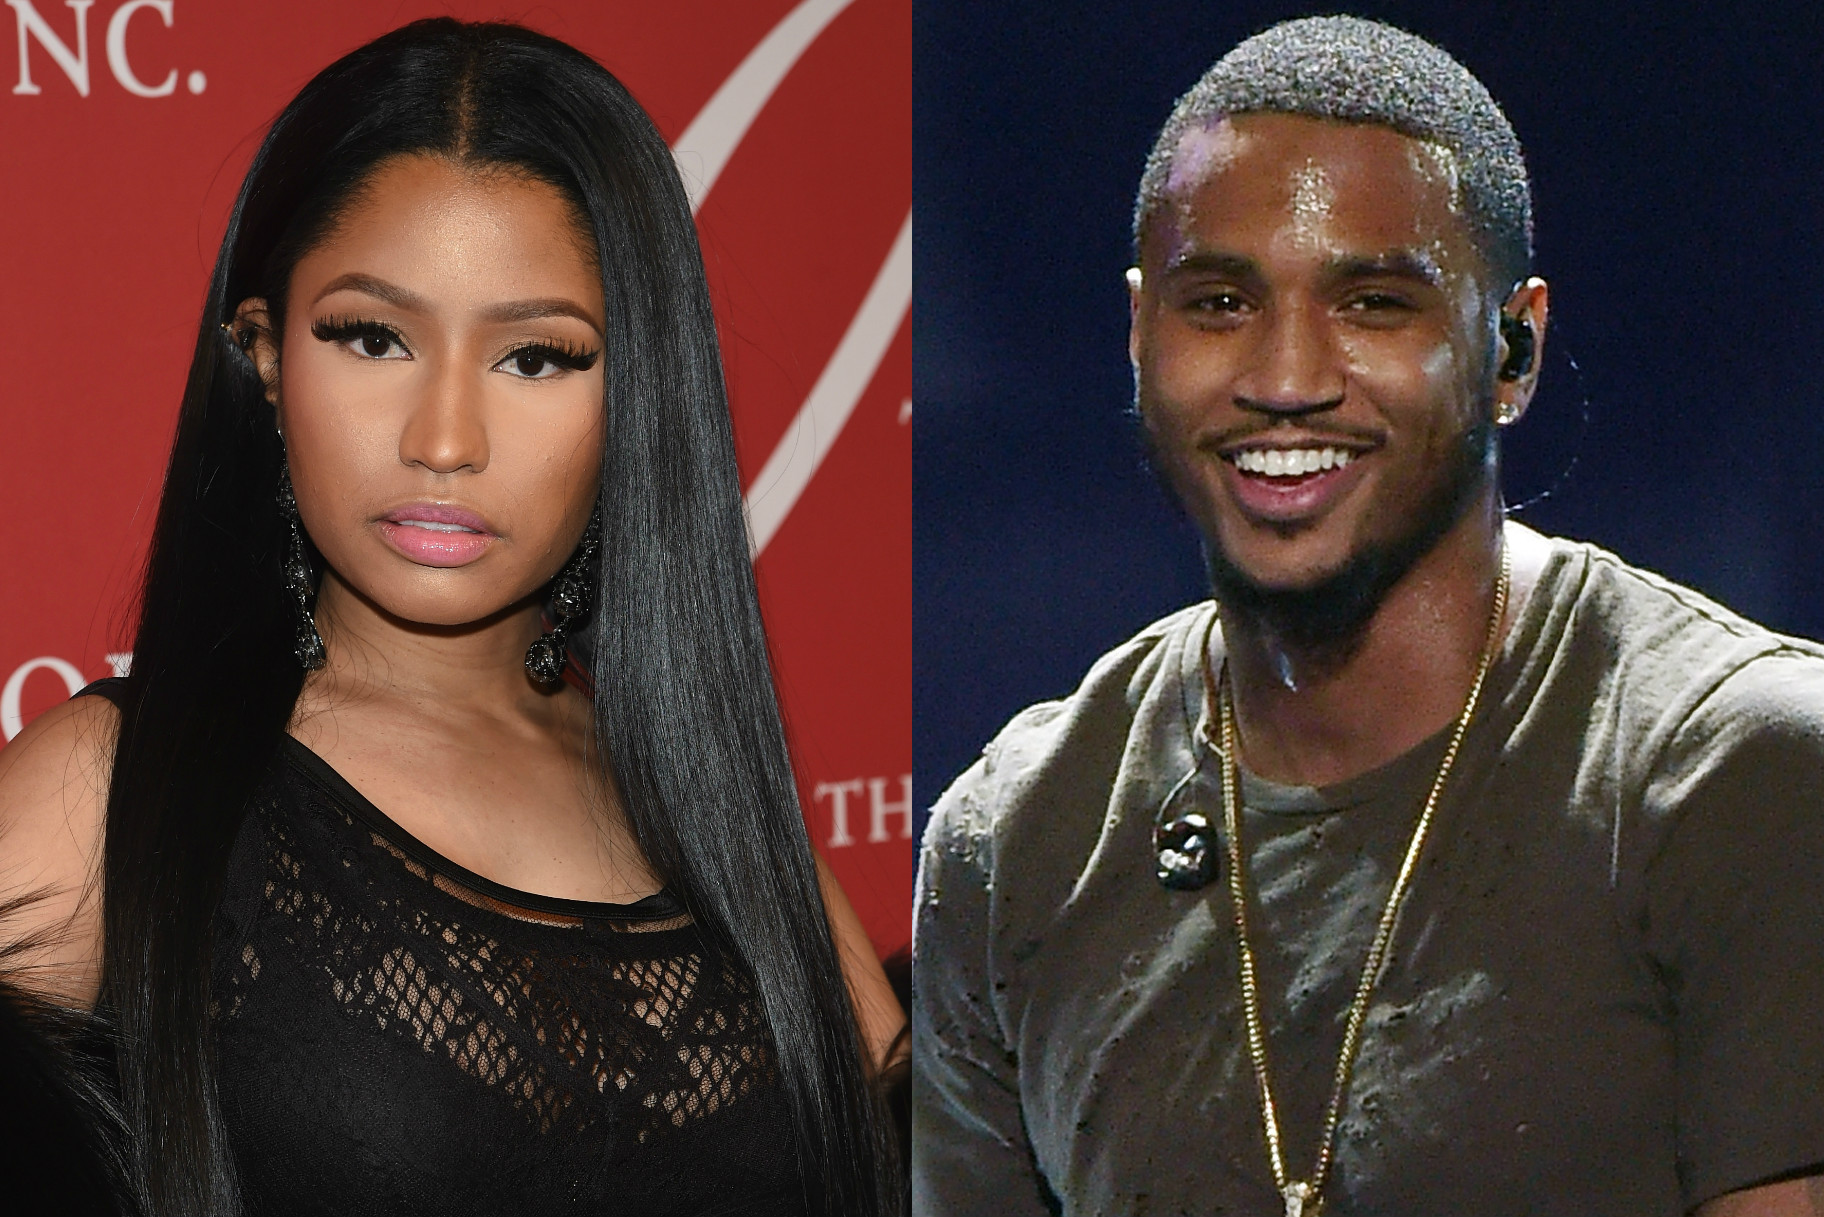 Nicki Minaj And Trey Songz Are Feuding On Twitter Very Real